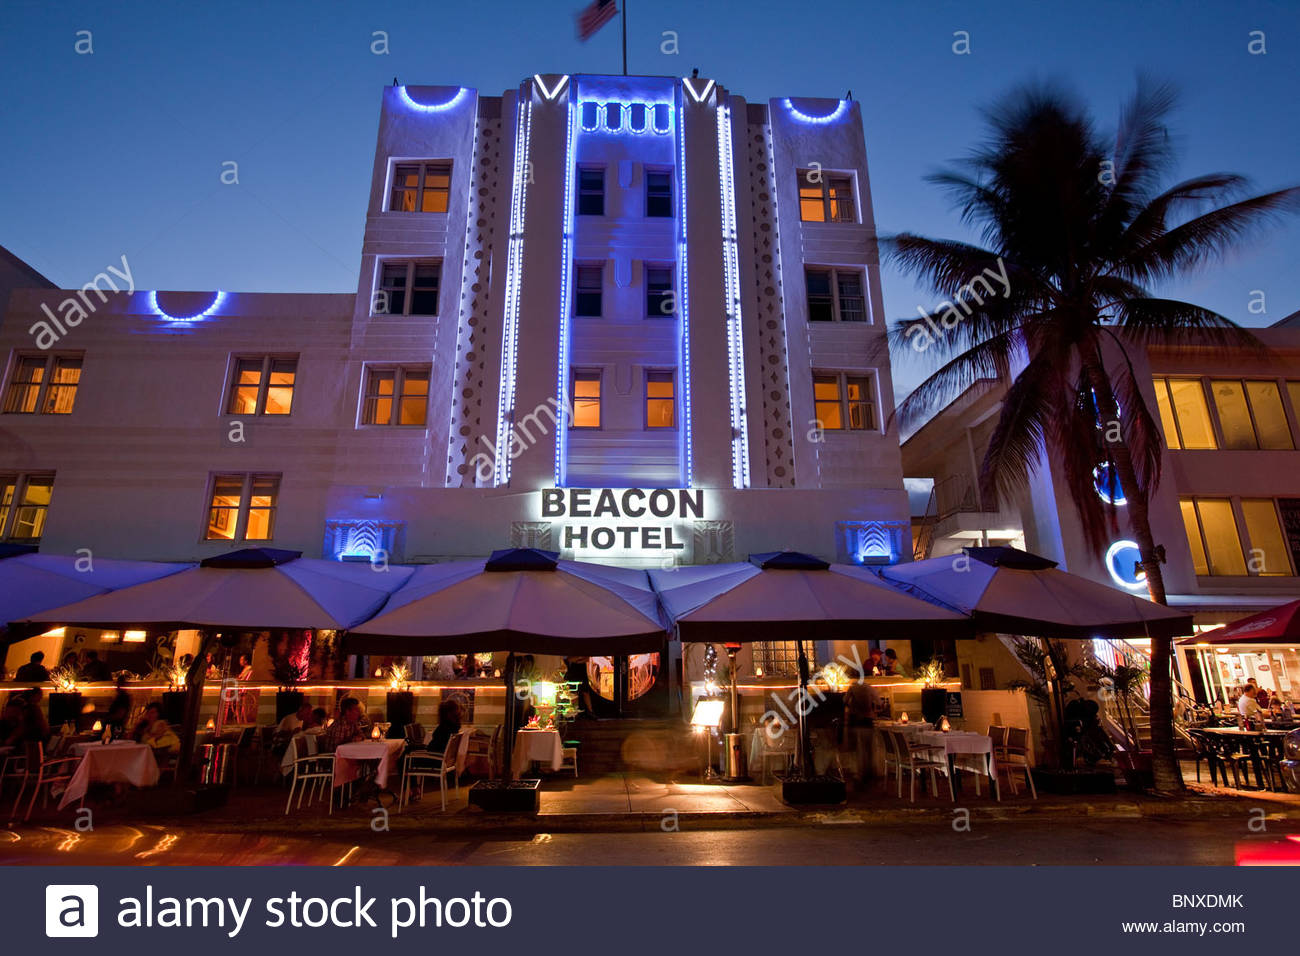 beacon hotel art deco hotel ocean drive south beach. Black Bedroom Furniture Sets. Home Design Ideas